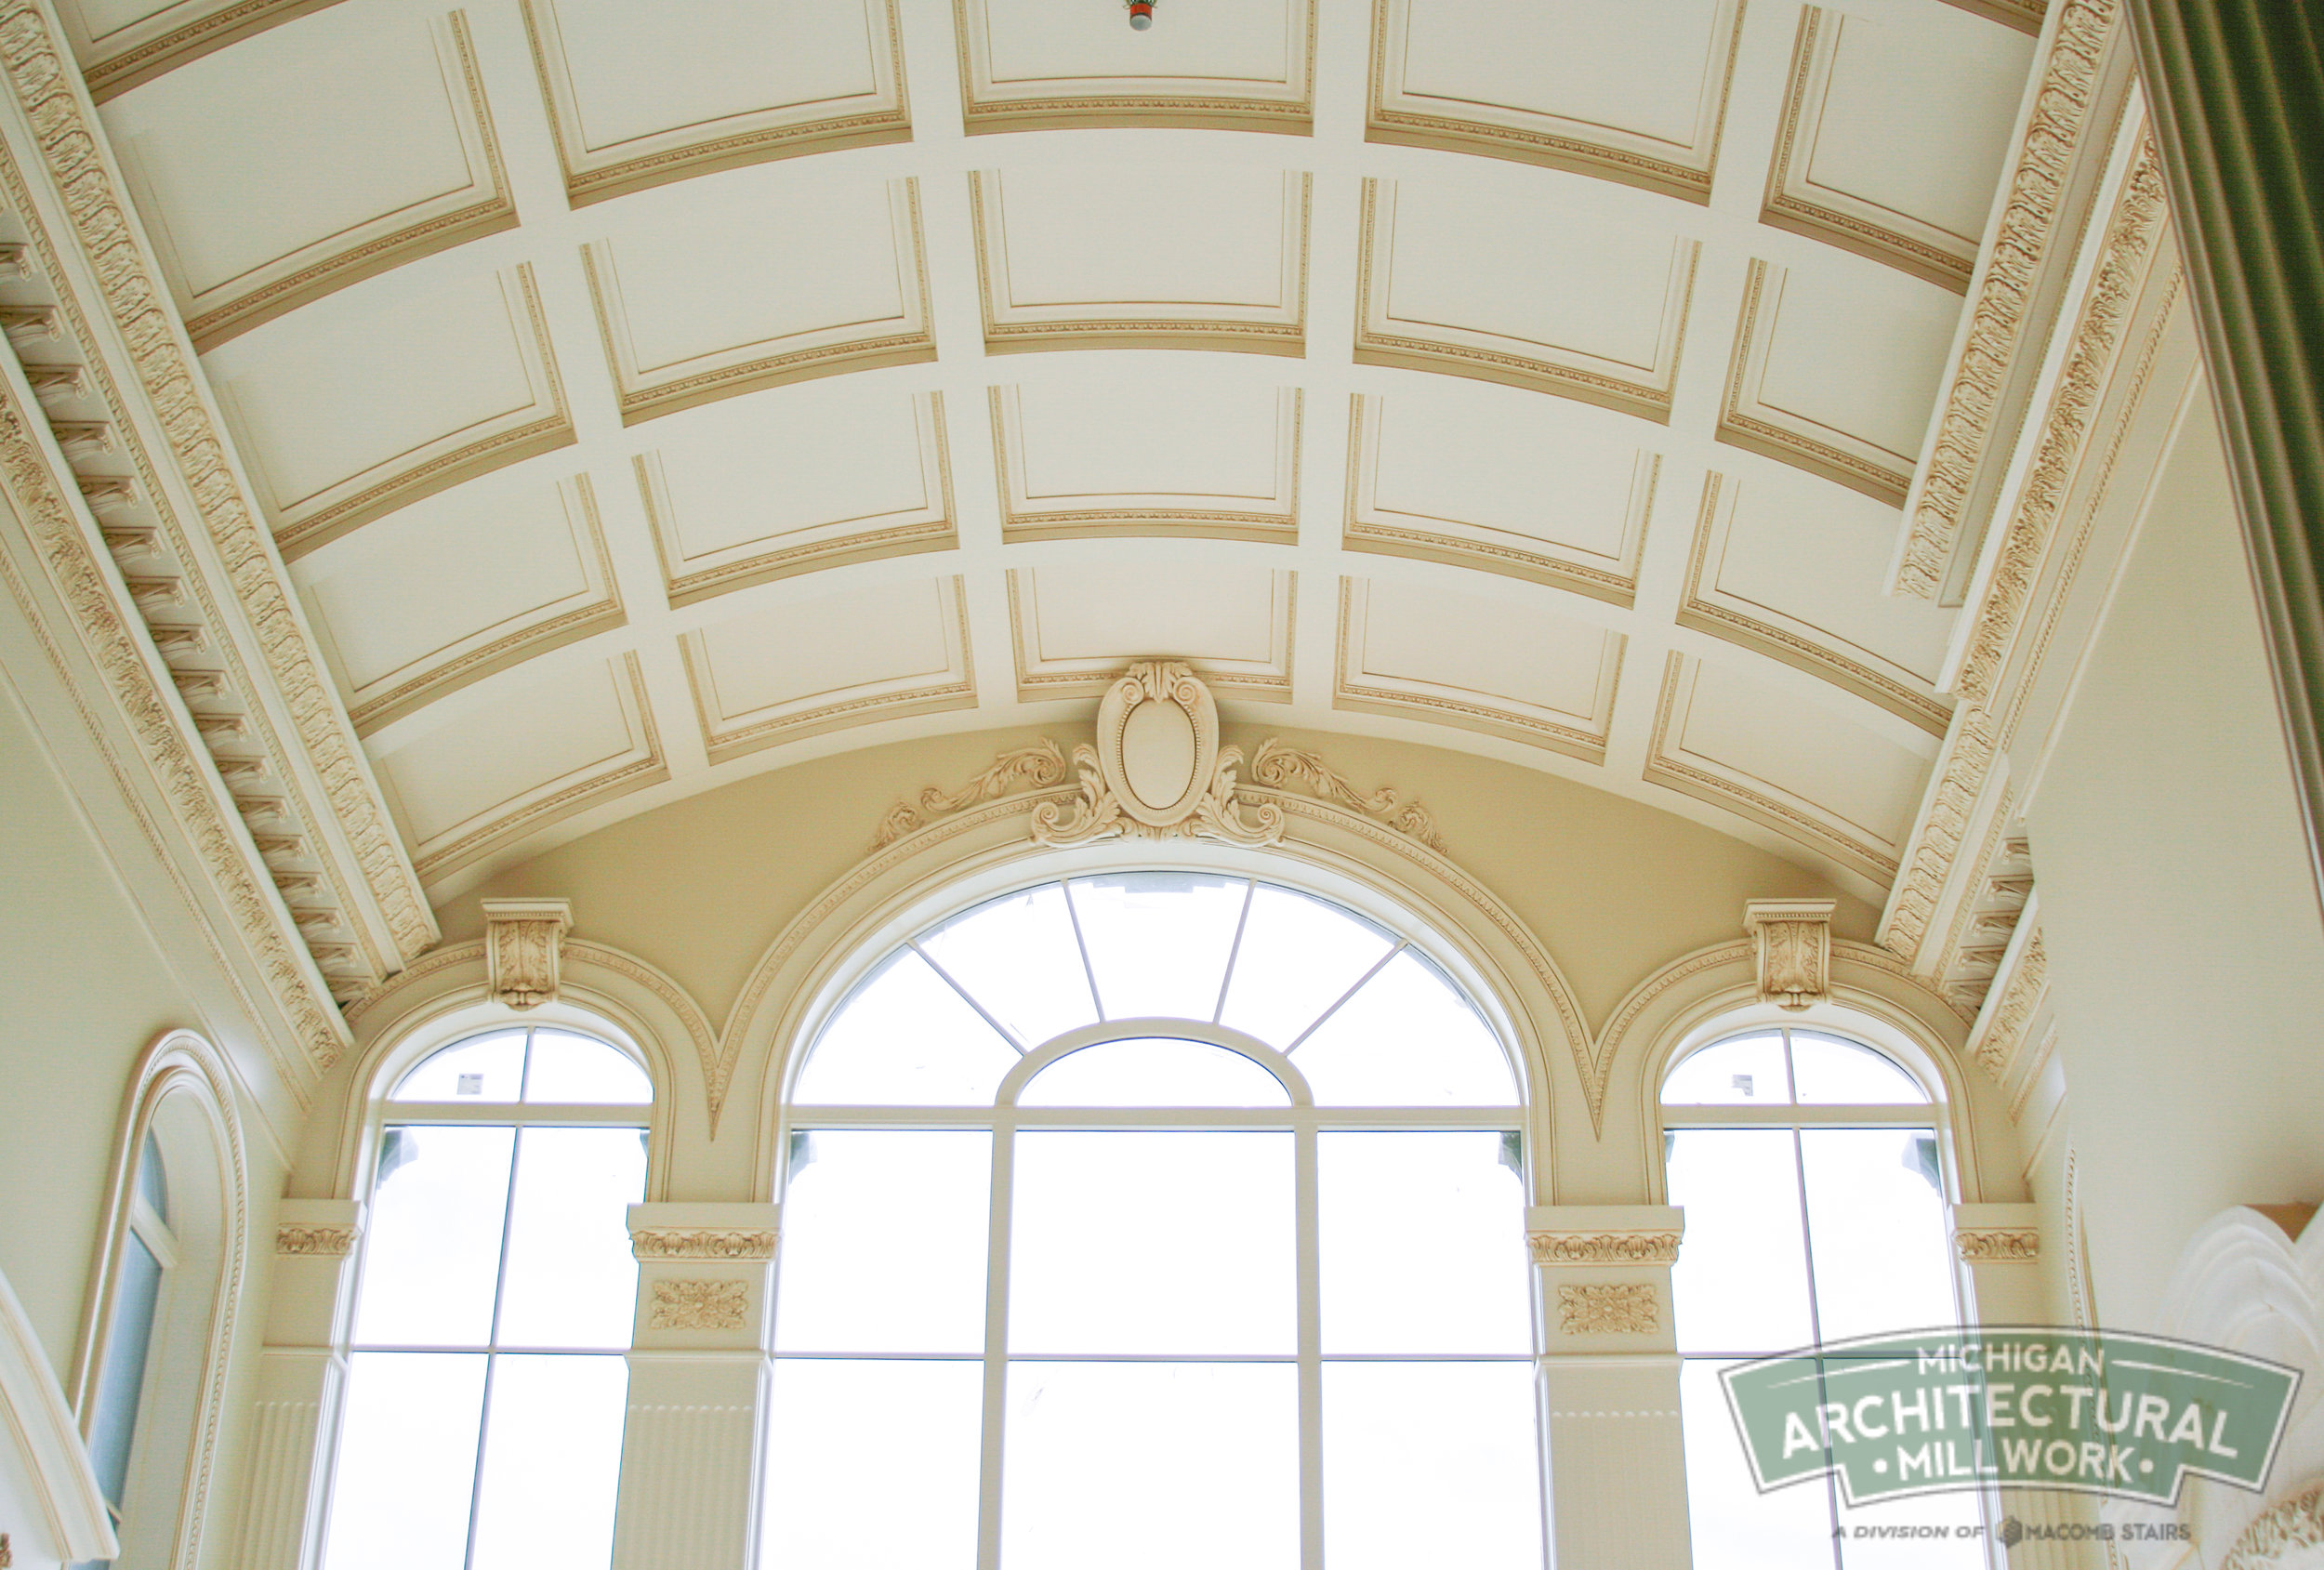 Michigan Architectural Millwork- Moulding and Millwork Photo-126.jpg